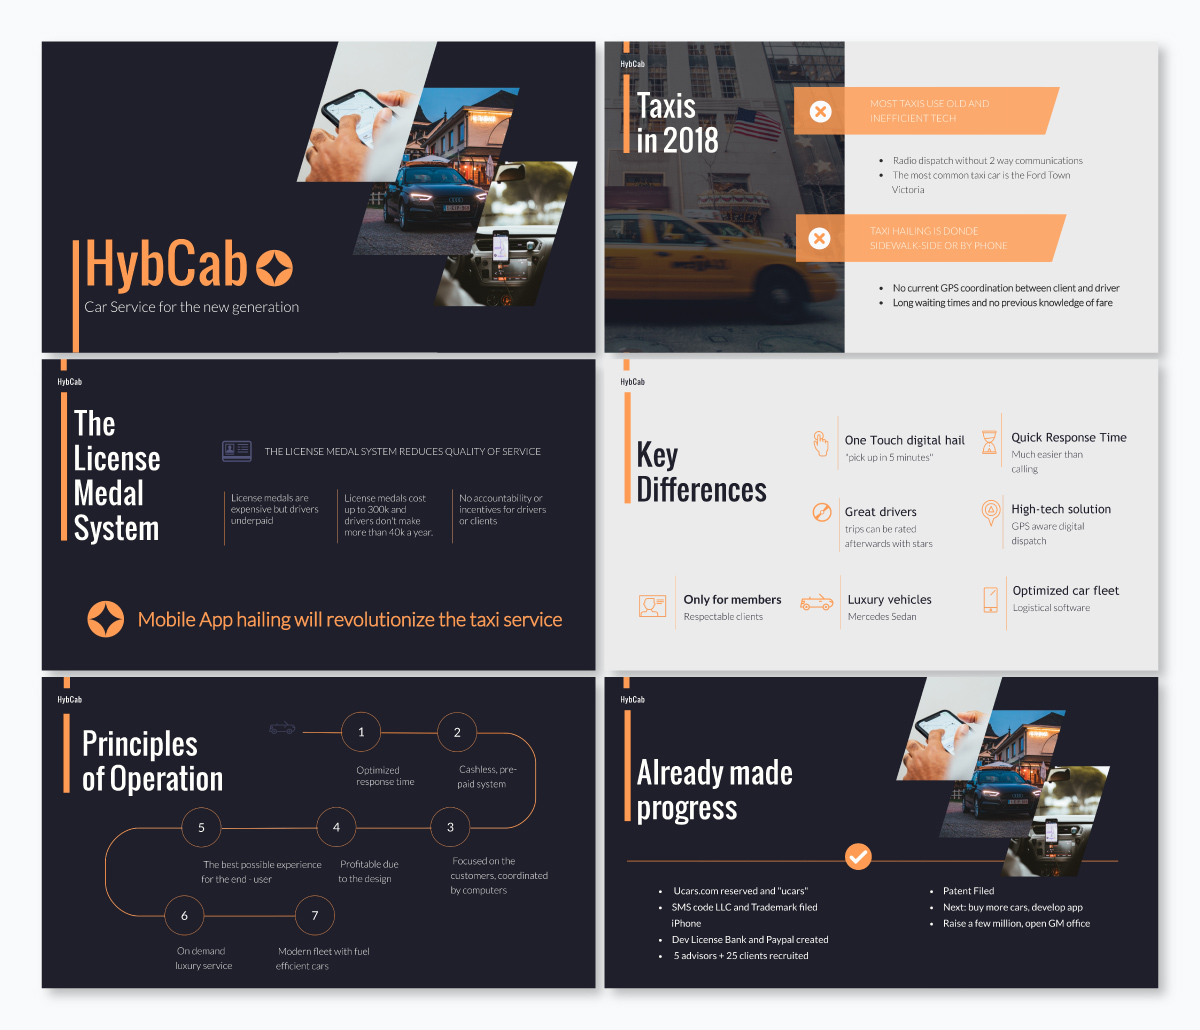 A pitch deck template available in Visme.